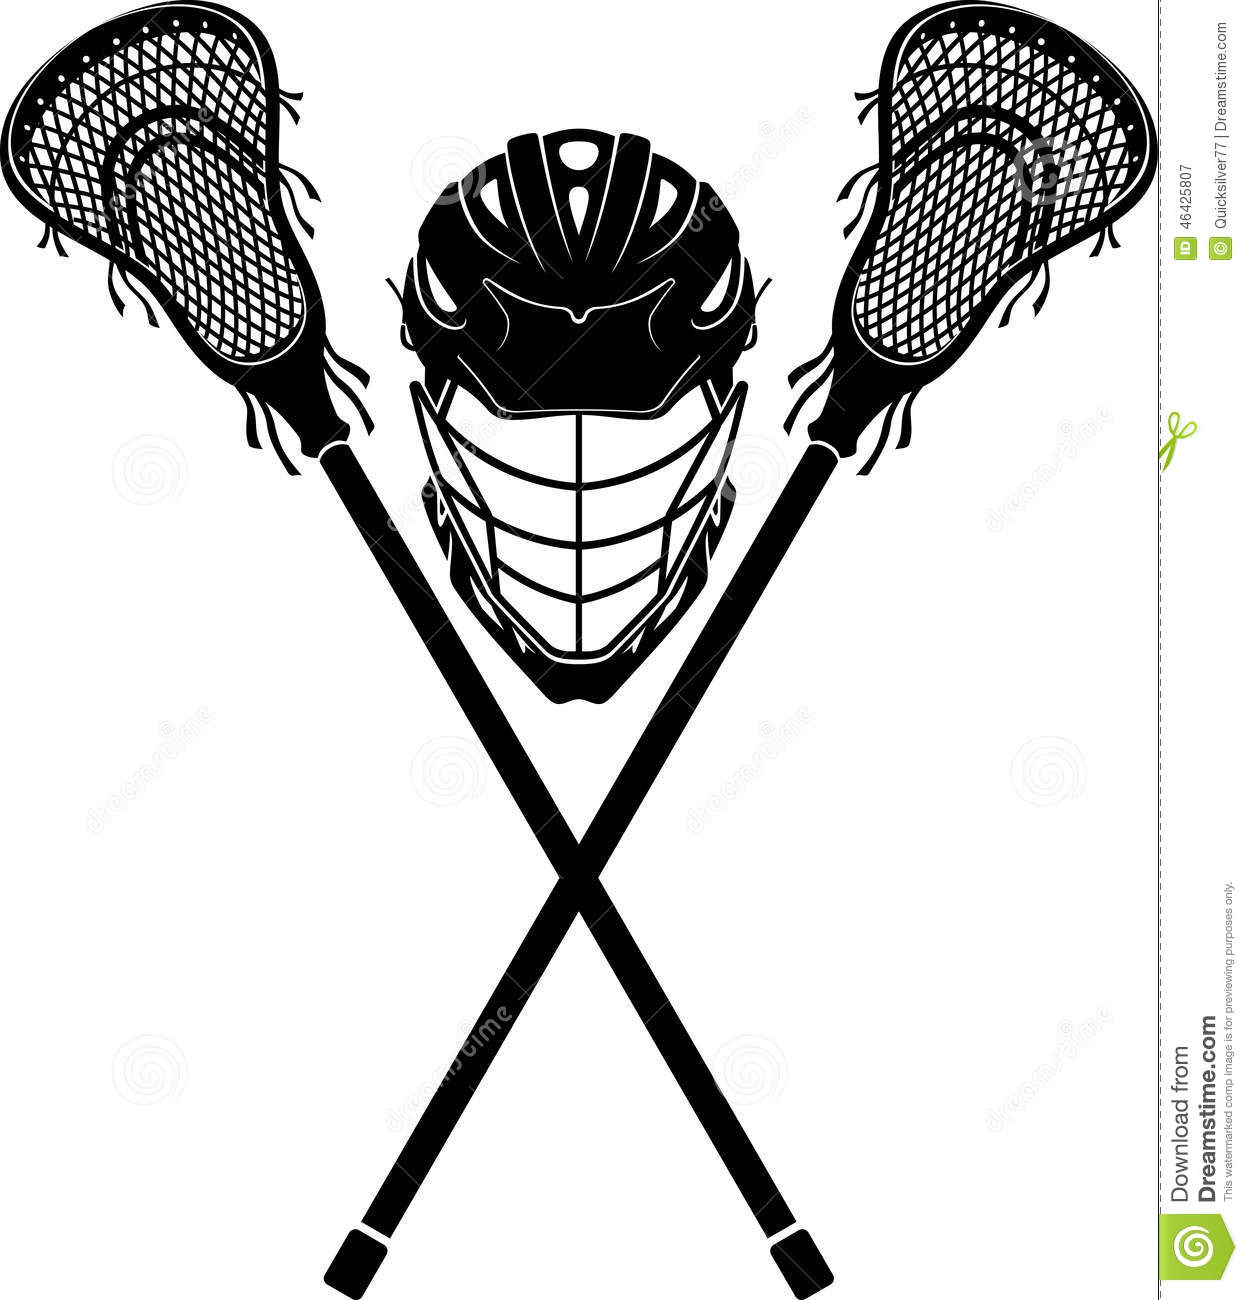 1248x1300 Image Result For Lacrosse Curtis Pintrest Lacrosse